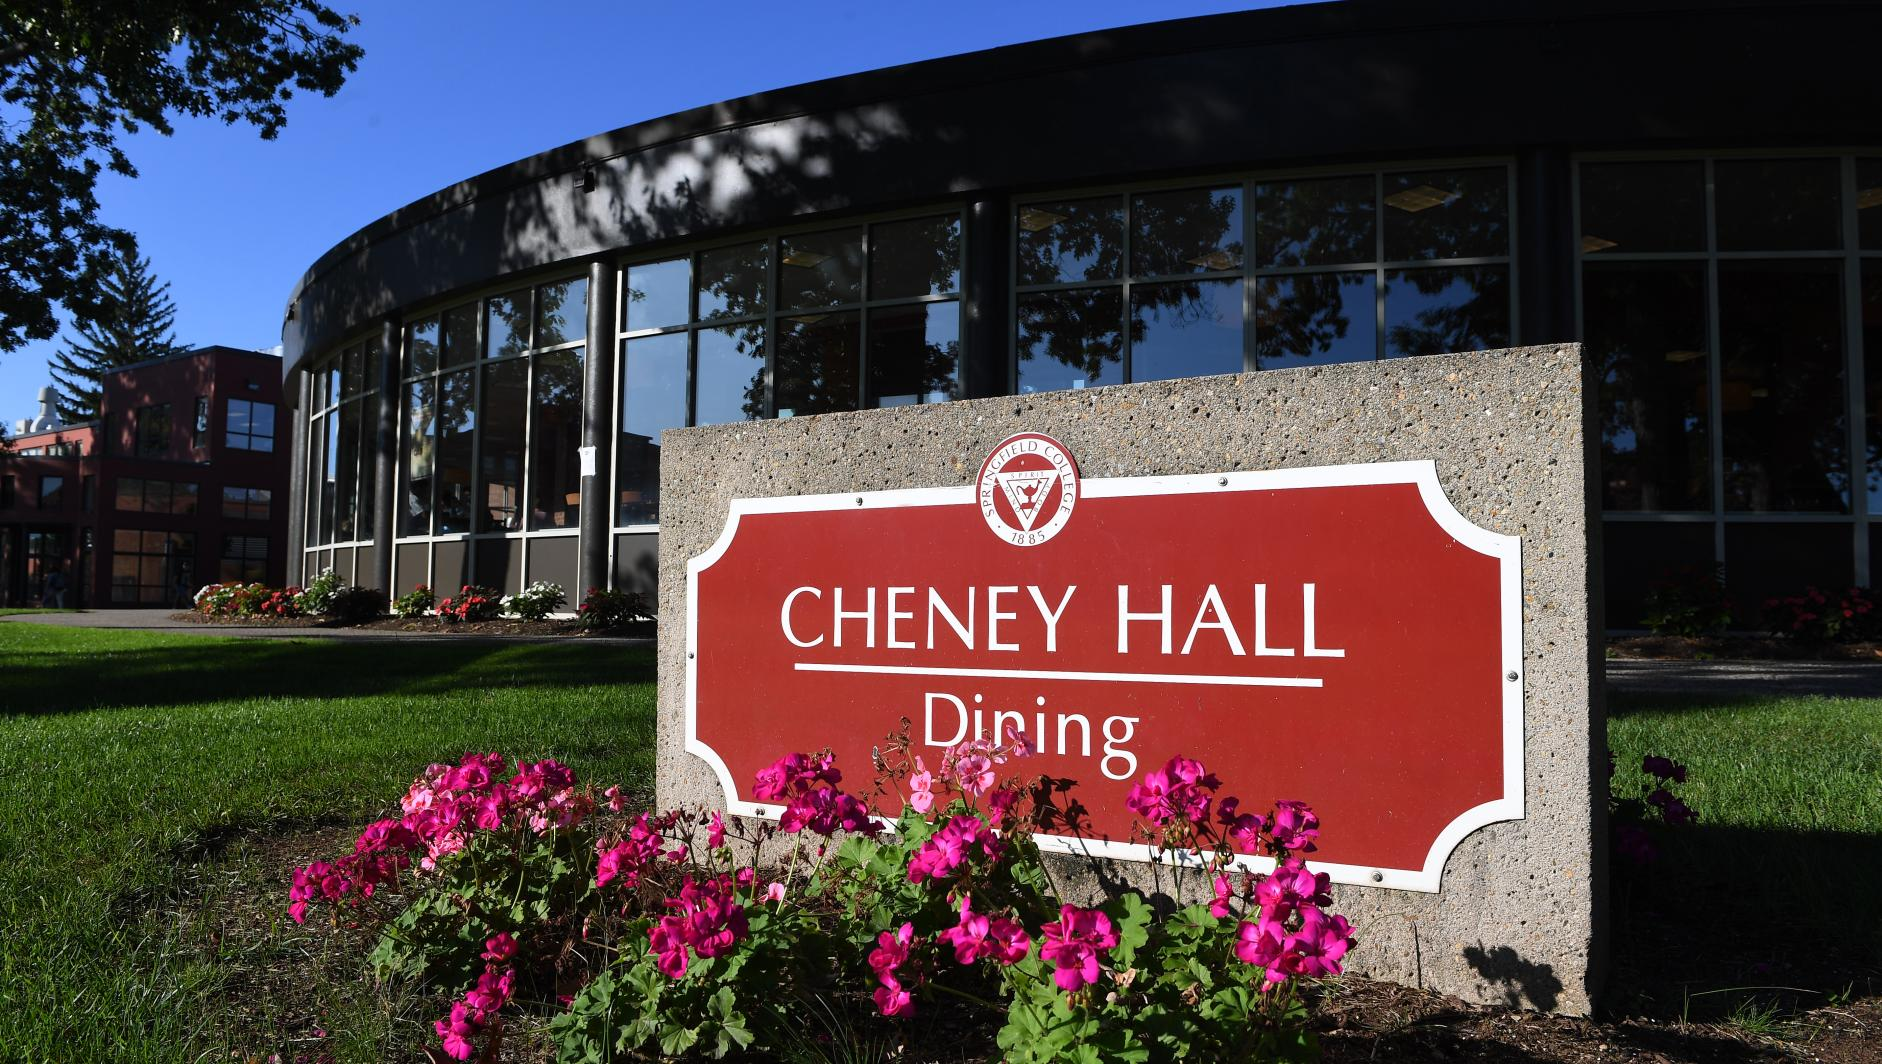 Cheney Hall